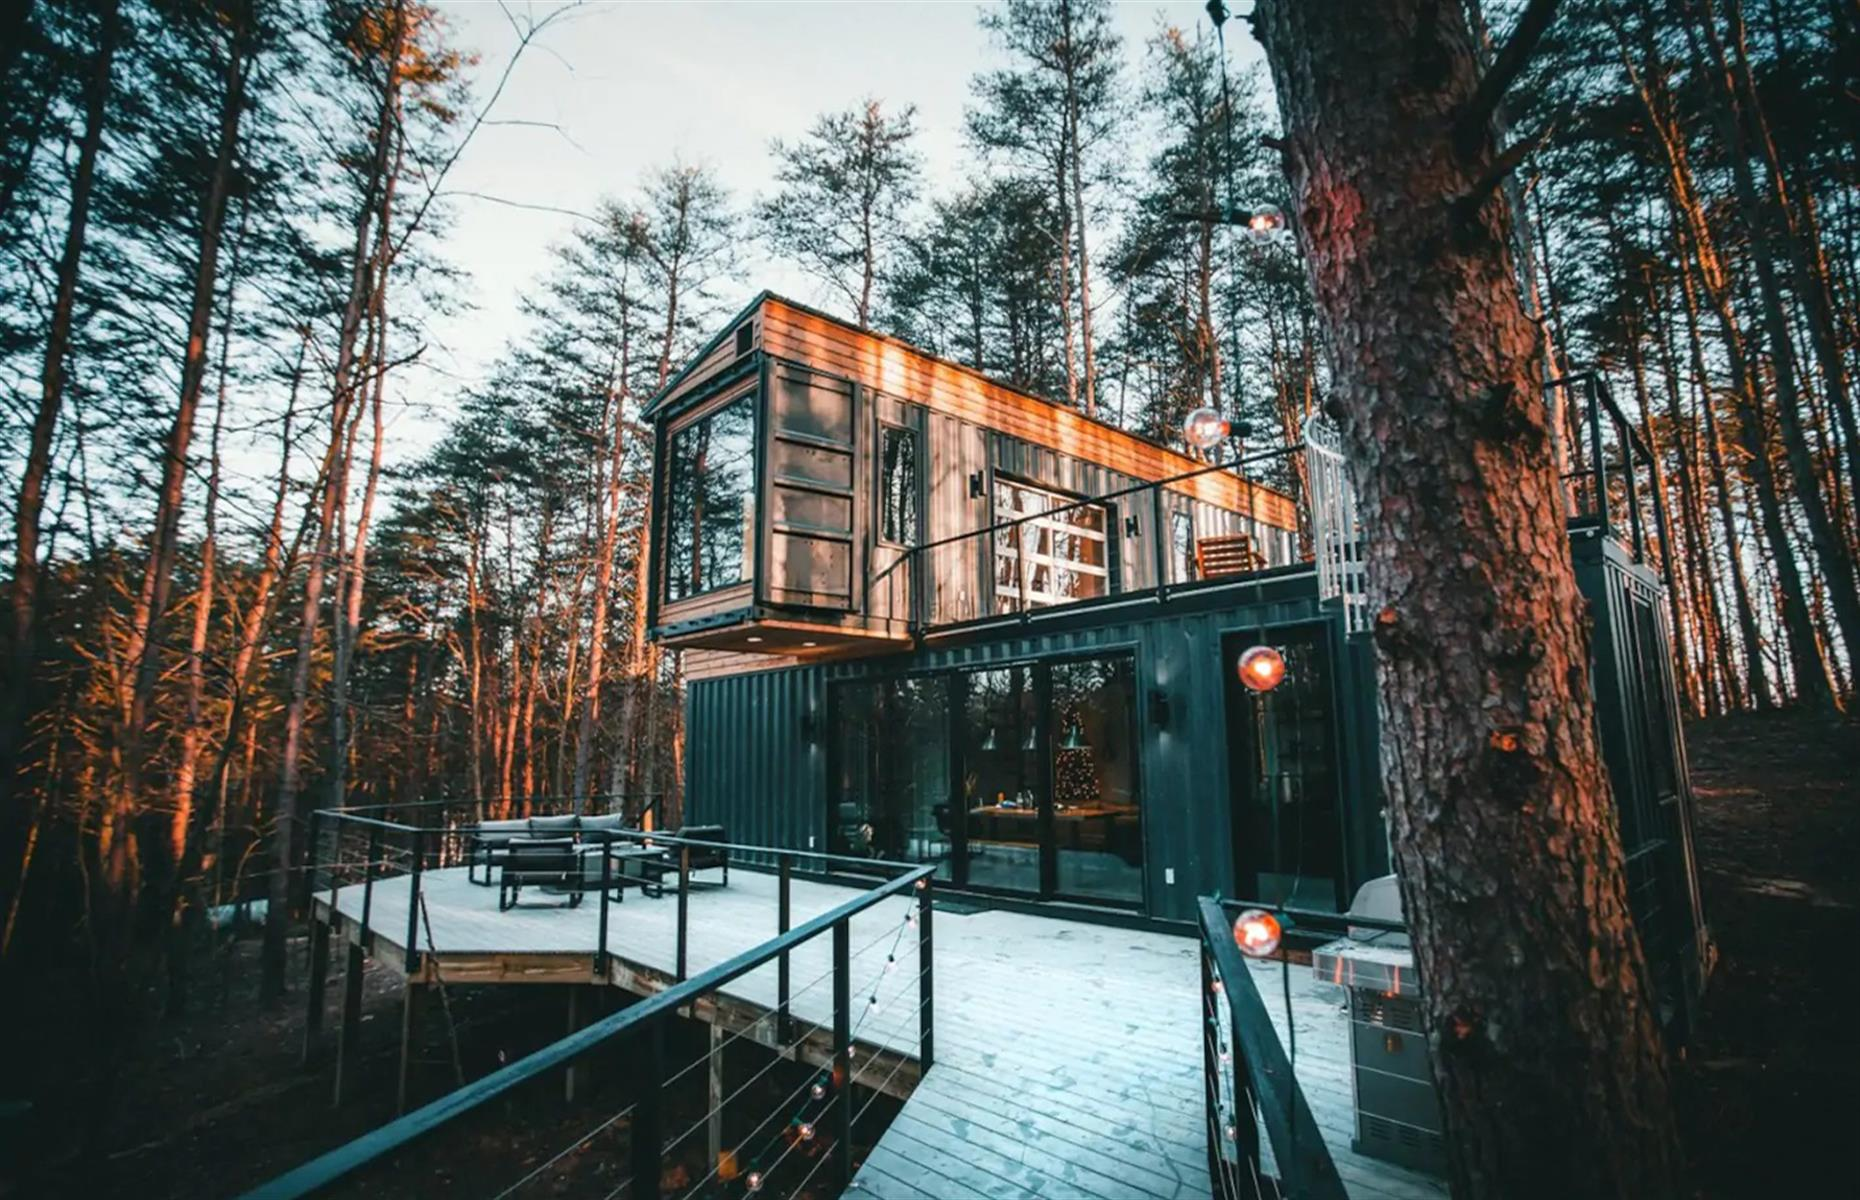 Slide 37 of 52: Three intermodal shipping containers have been transformed into an outstanding three-bedroom house hidden away among the trees in Rockbridge, Ohio. After a day of hiking, fishing or canoeing, snuggle up next to the cozy gas fireplace or take a dip in the hot tub nestled in the forest.